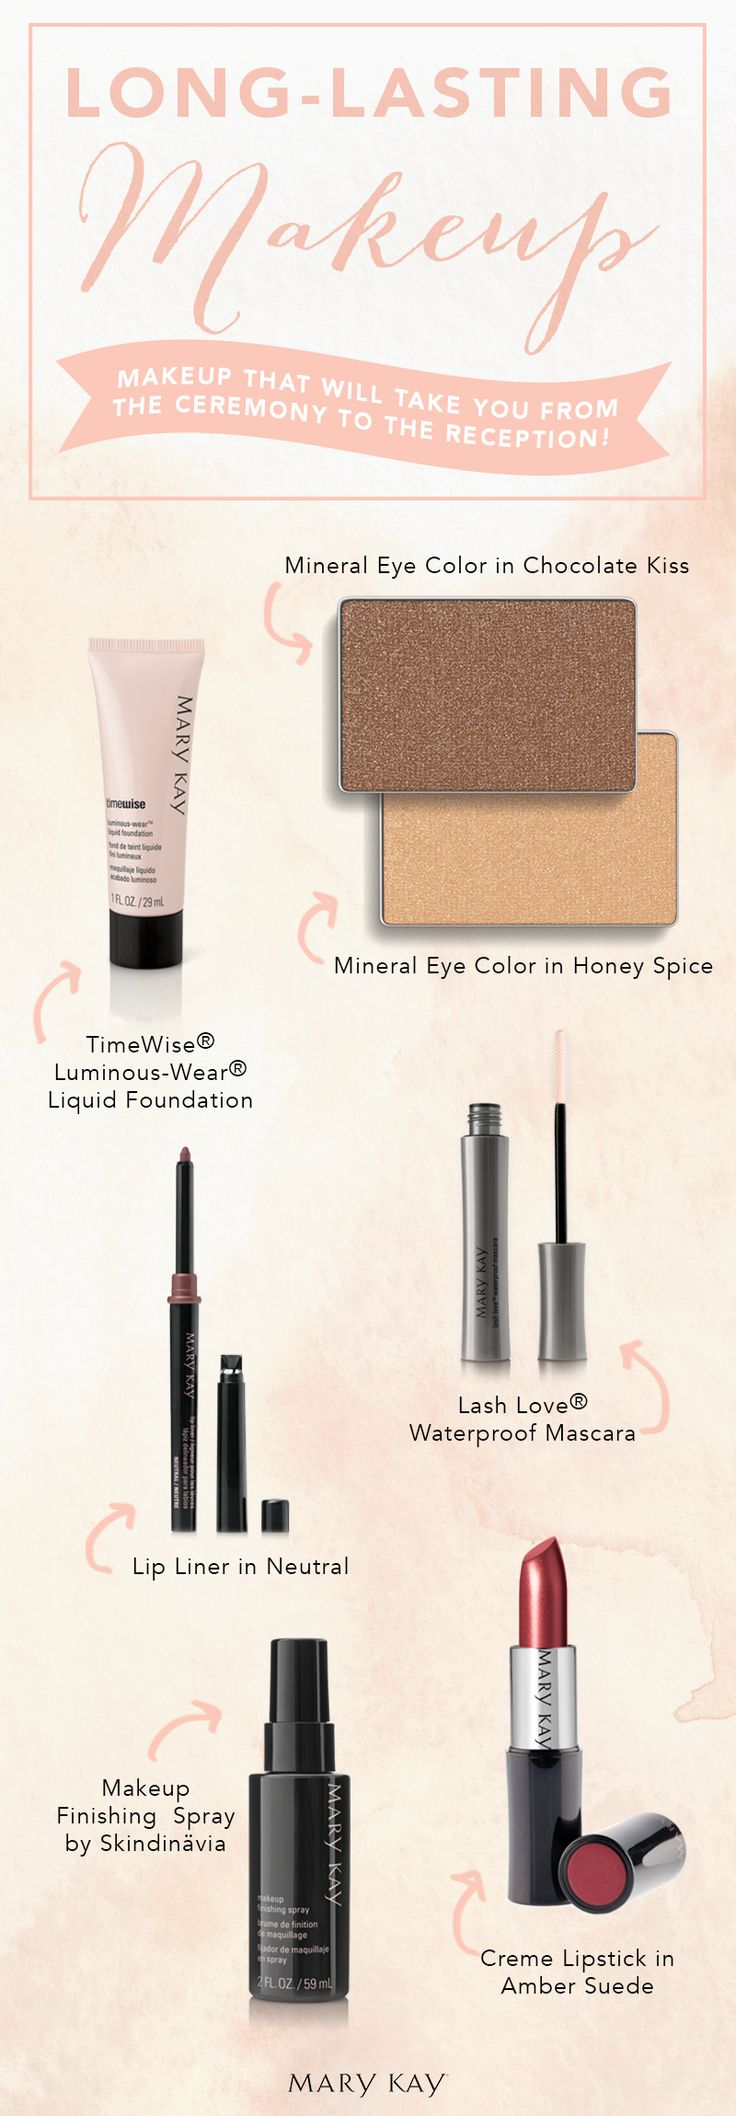 Mary Kay makeup products marykay.com/mgraves2020